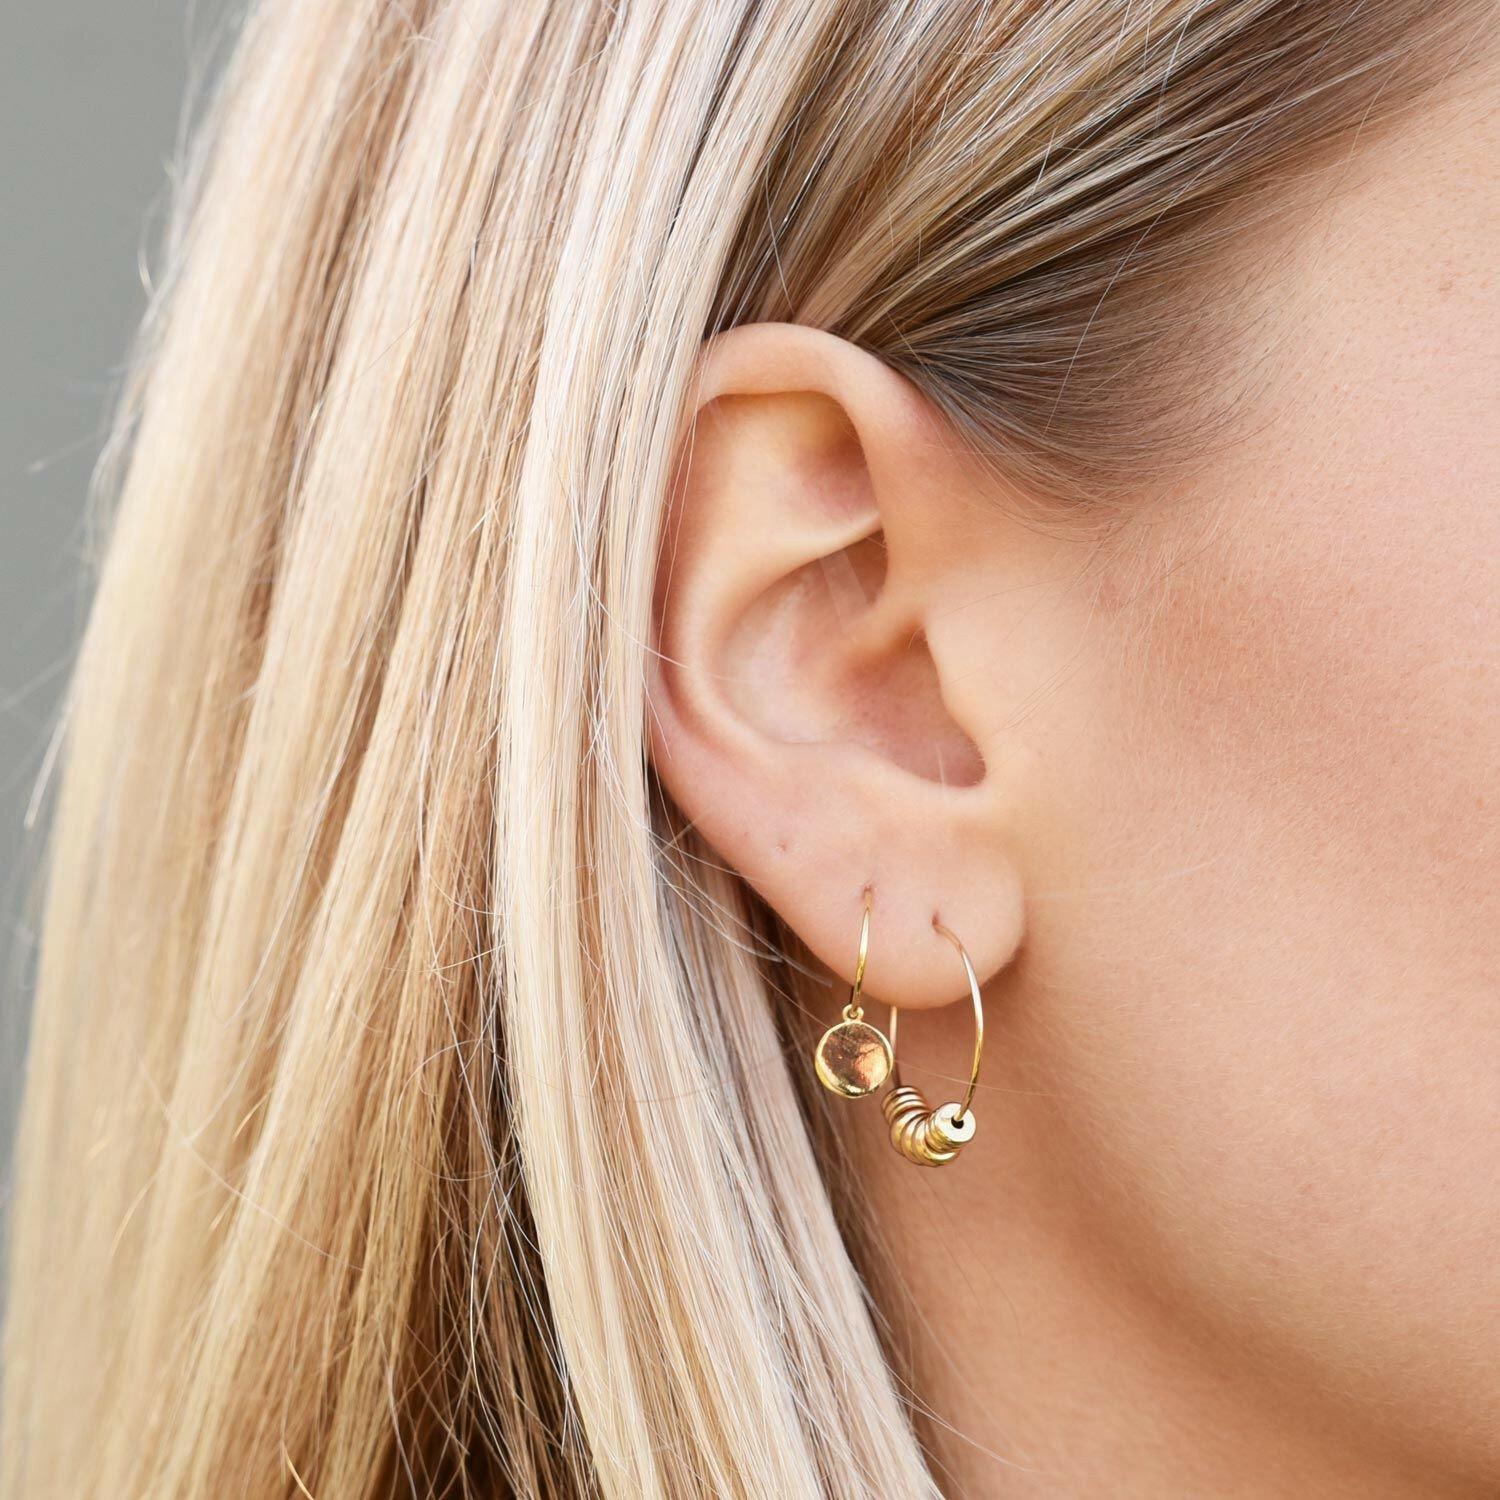 ROUNDY HOOPES EARRINGS GOLD